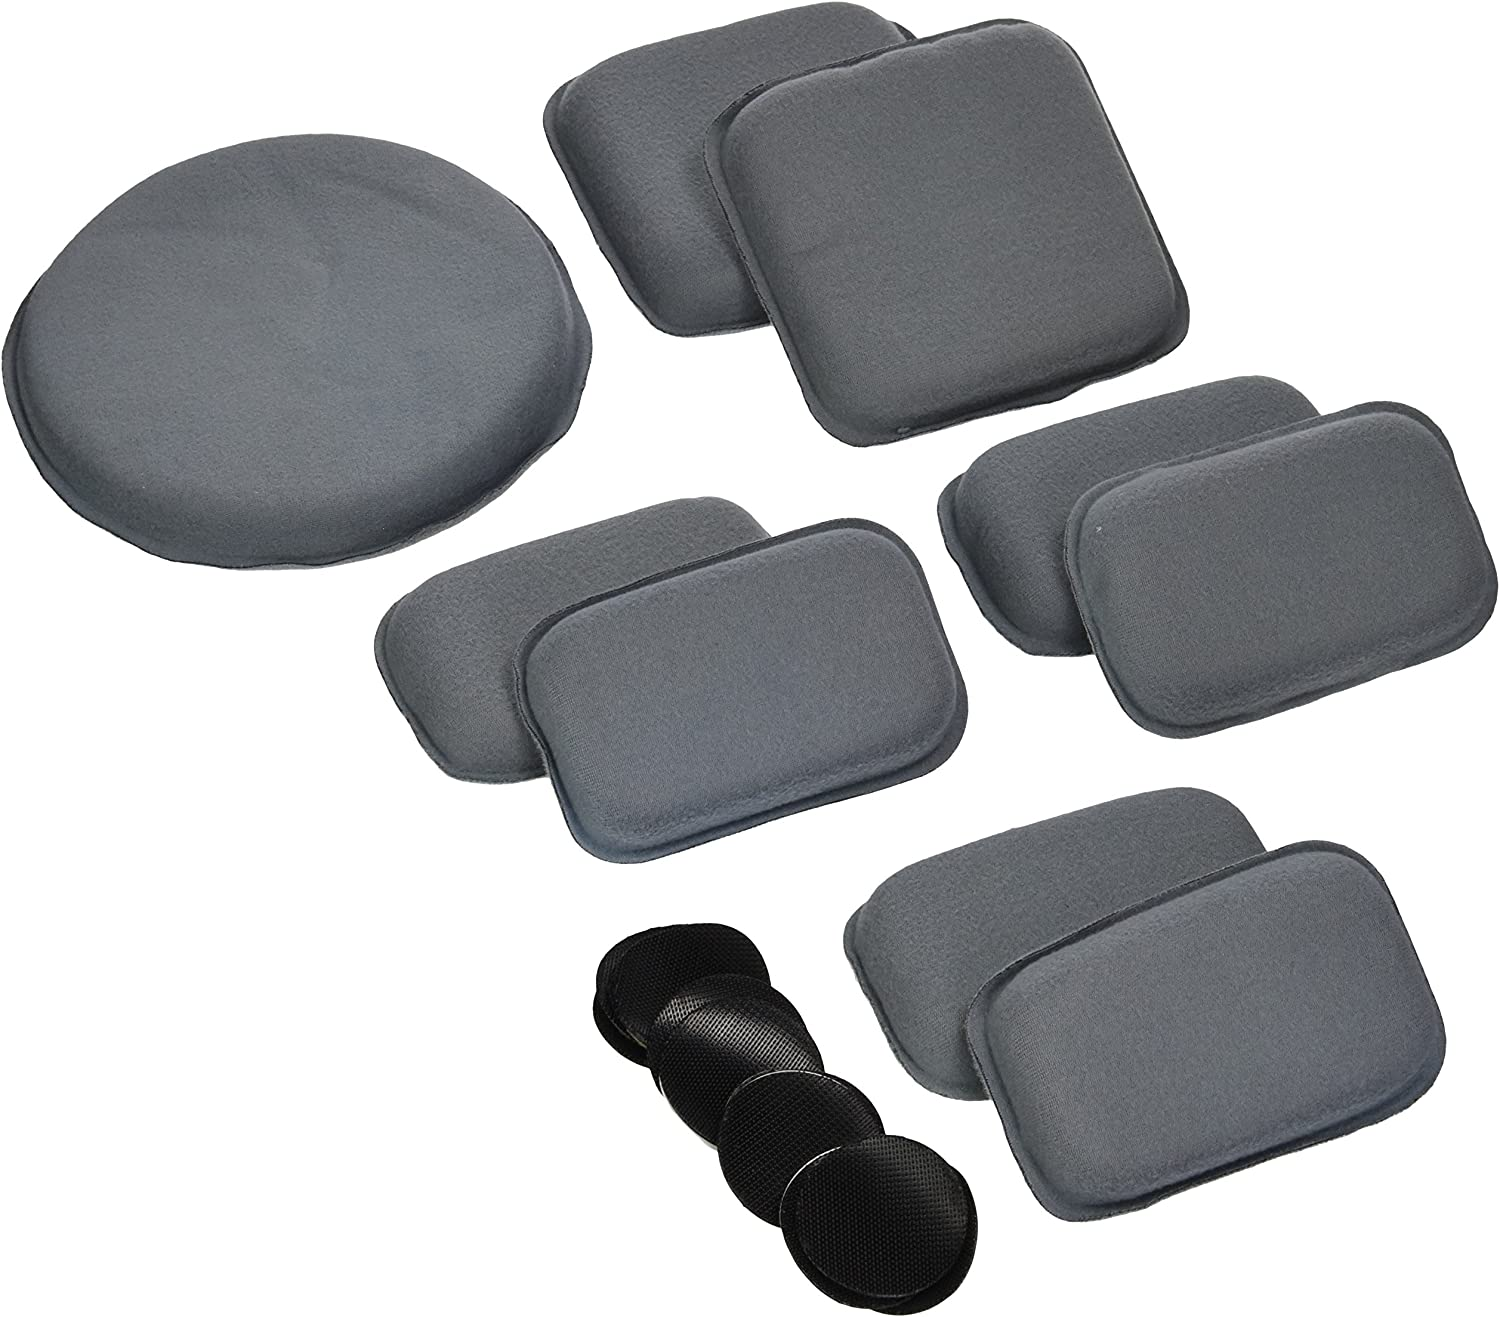 FMA Helmet San Diego Mall Replacement Pads Universal Kits Set Directly managed store Acce Foam Padding